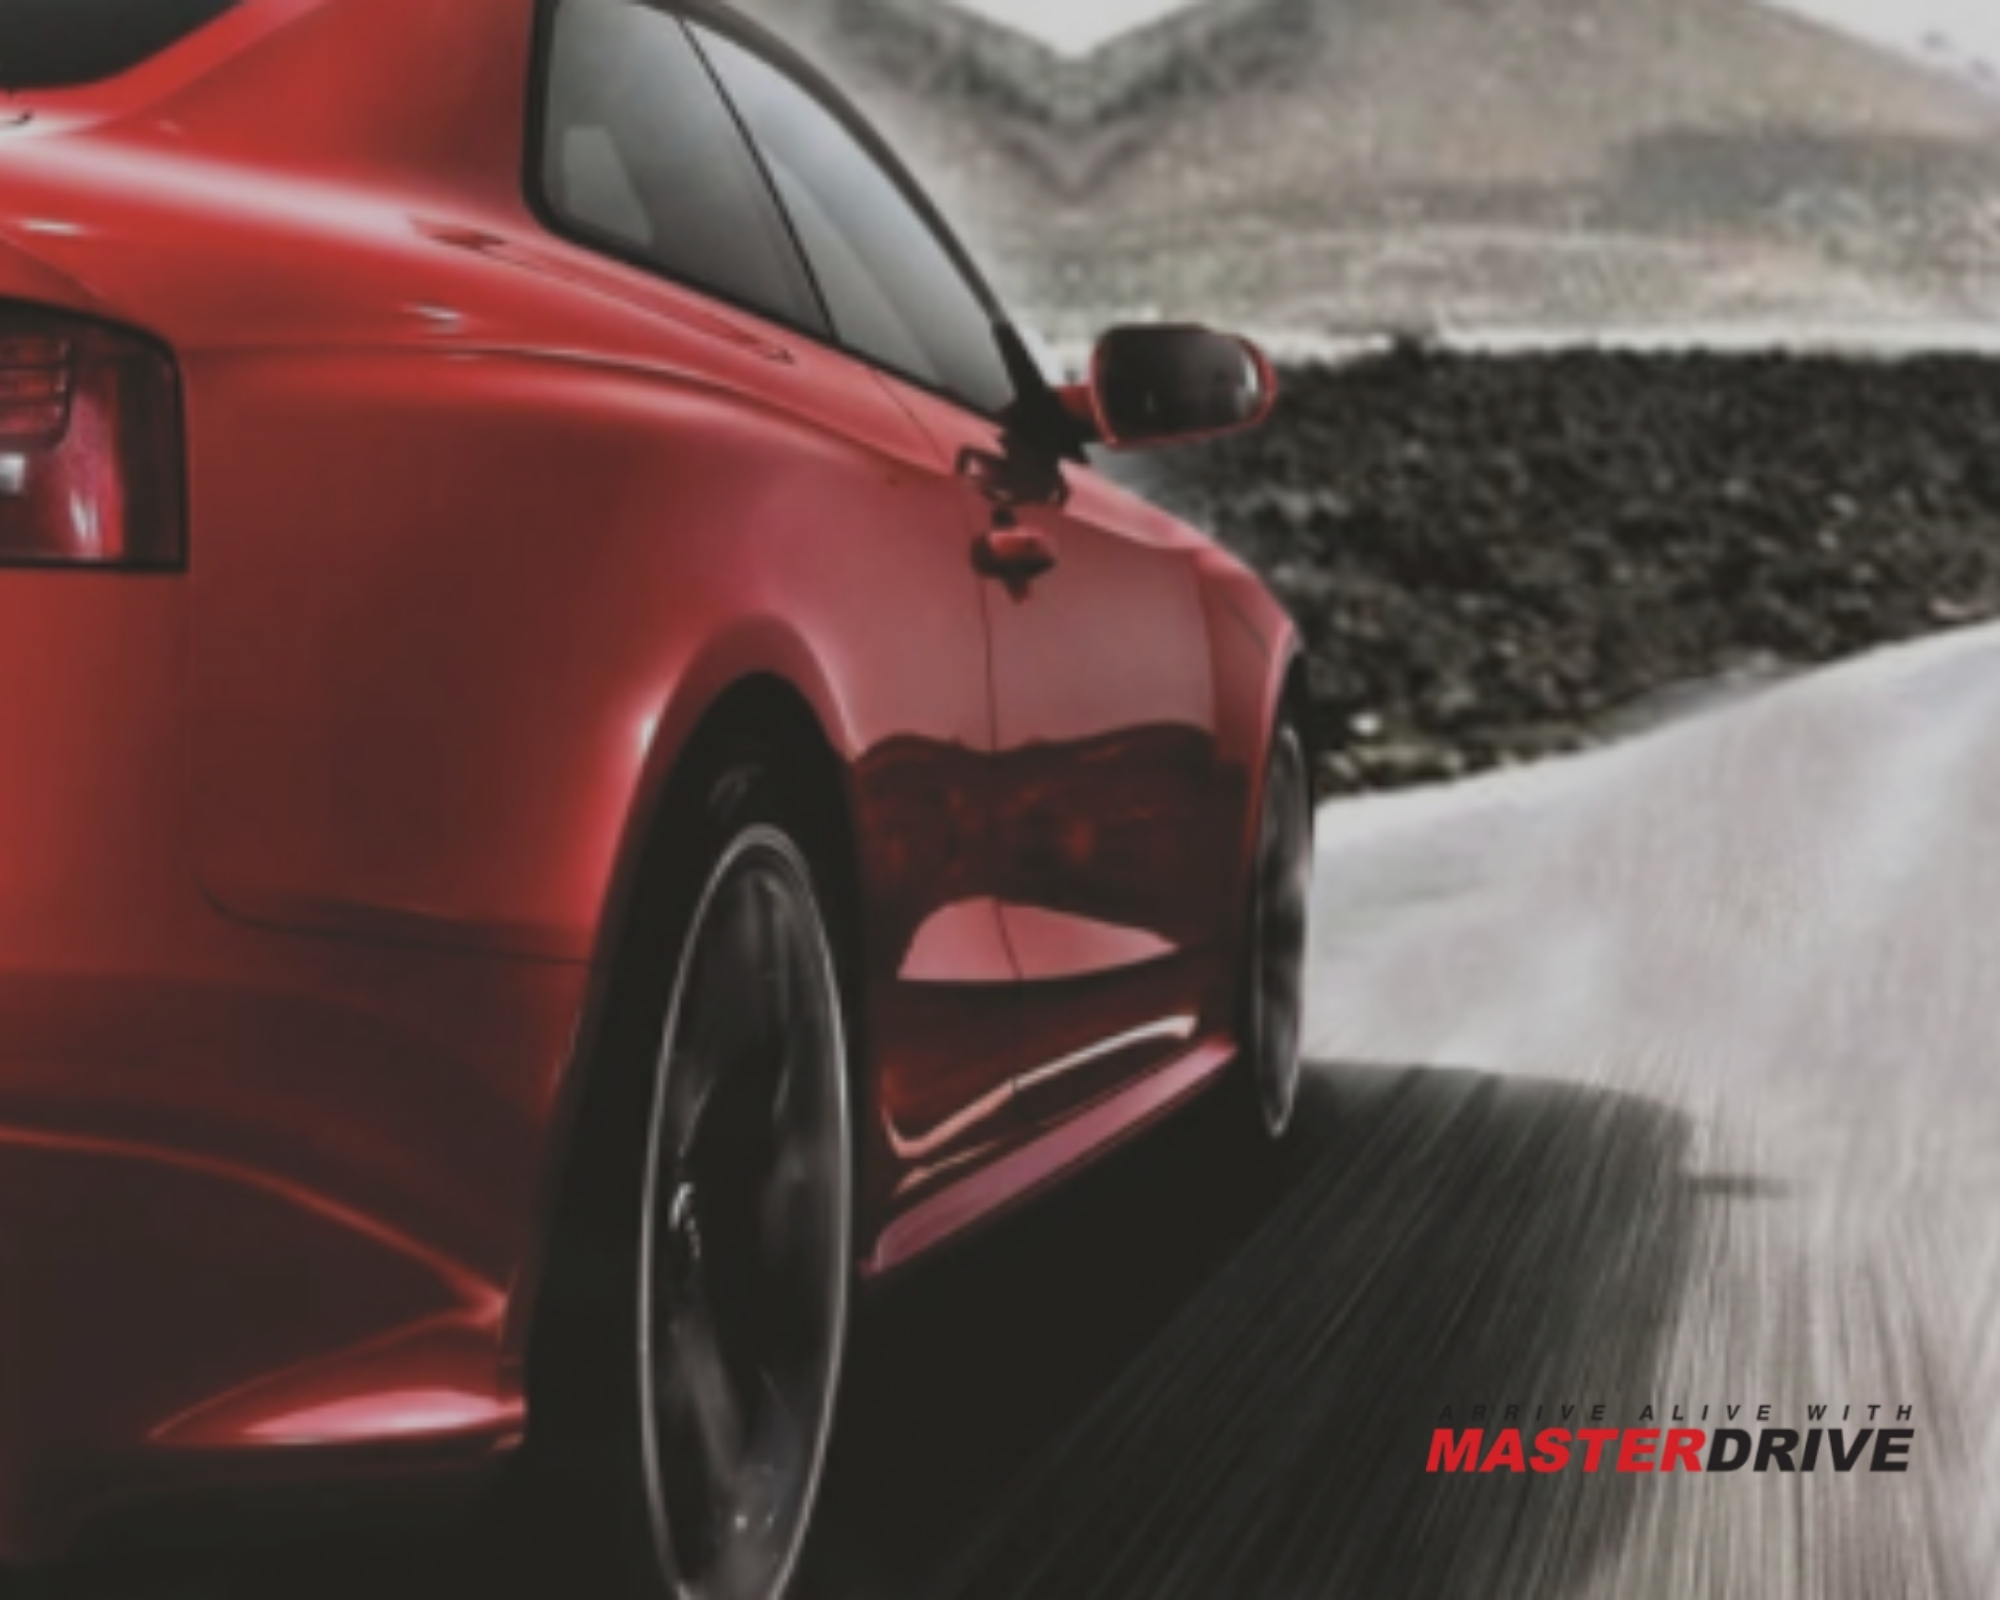 master drive competition